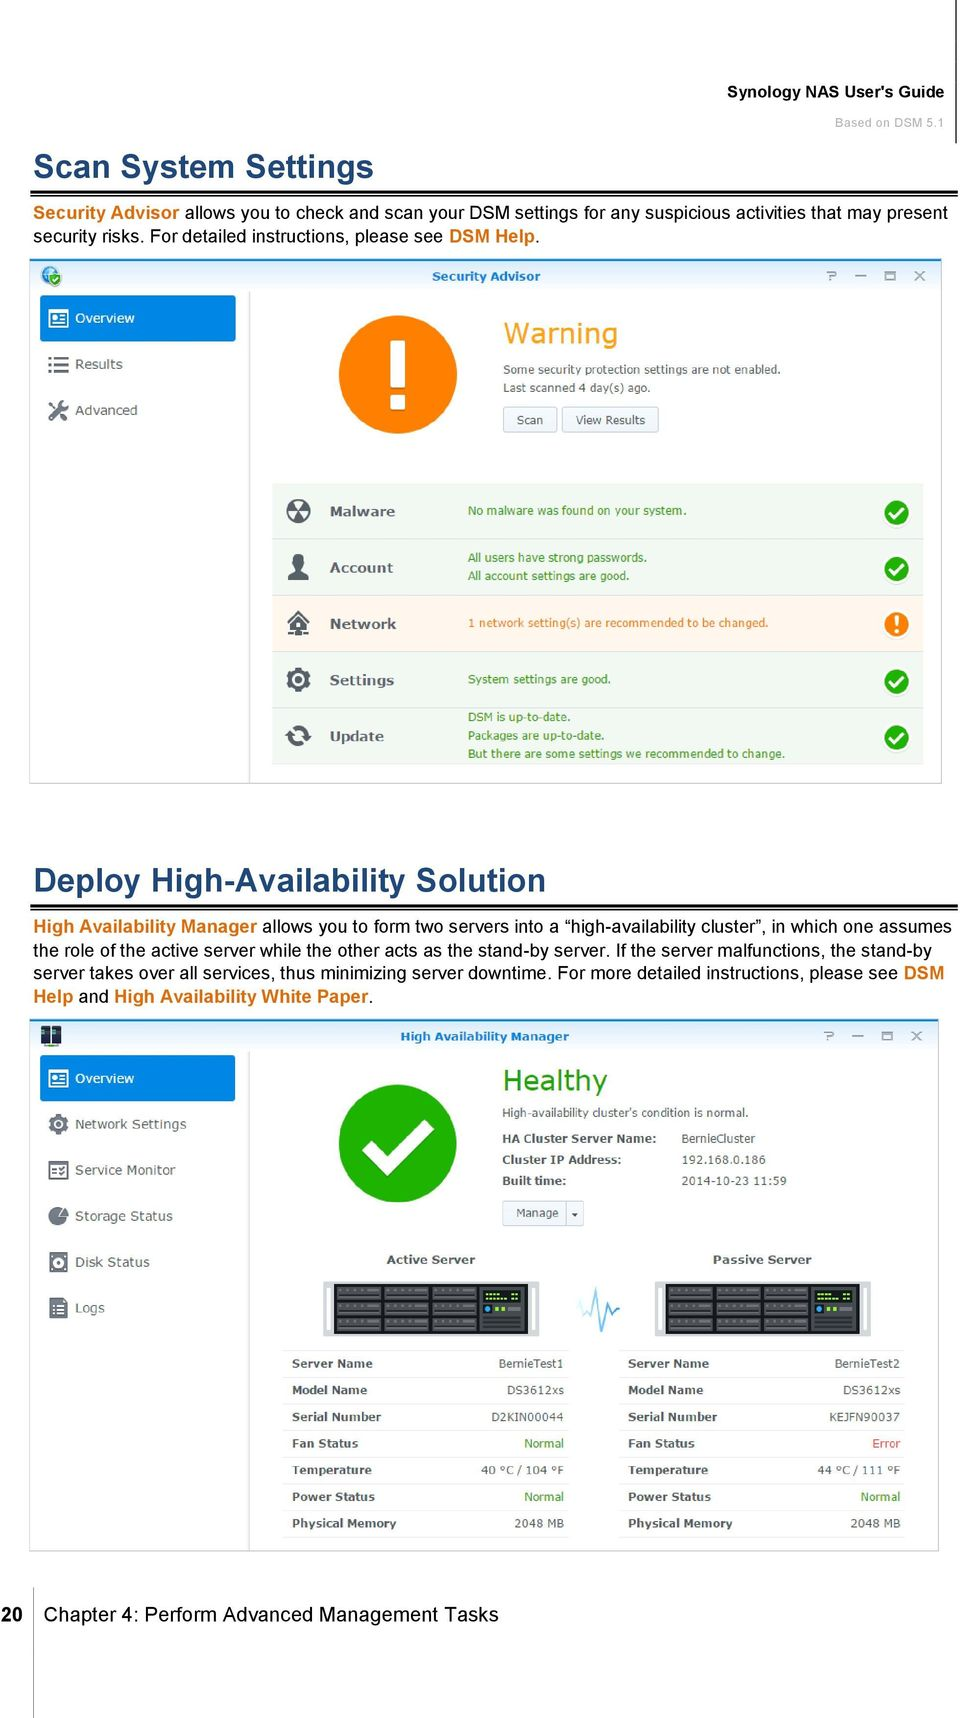 Deploy High-Availability Solution High Availability Manager allows you to form two servers into a high-availability cluster, in which one assumes the role of the active